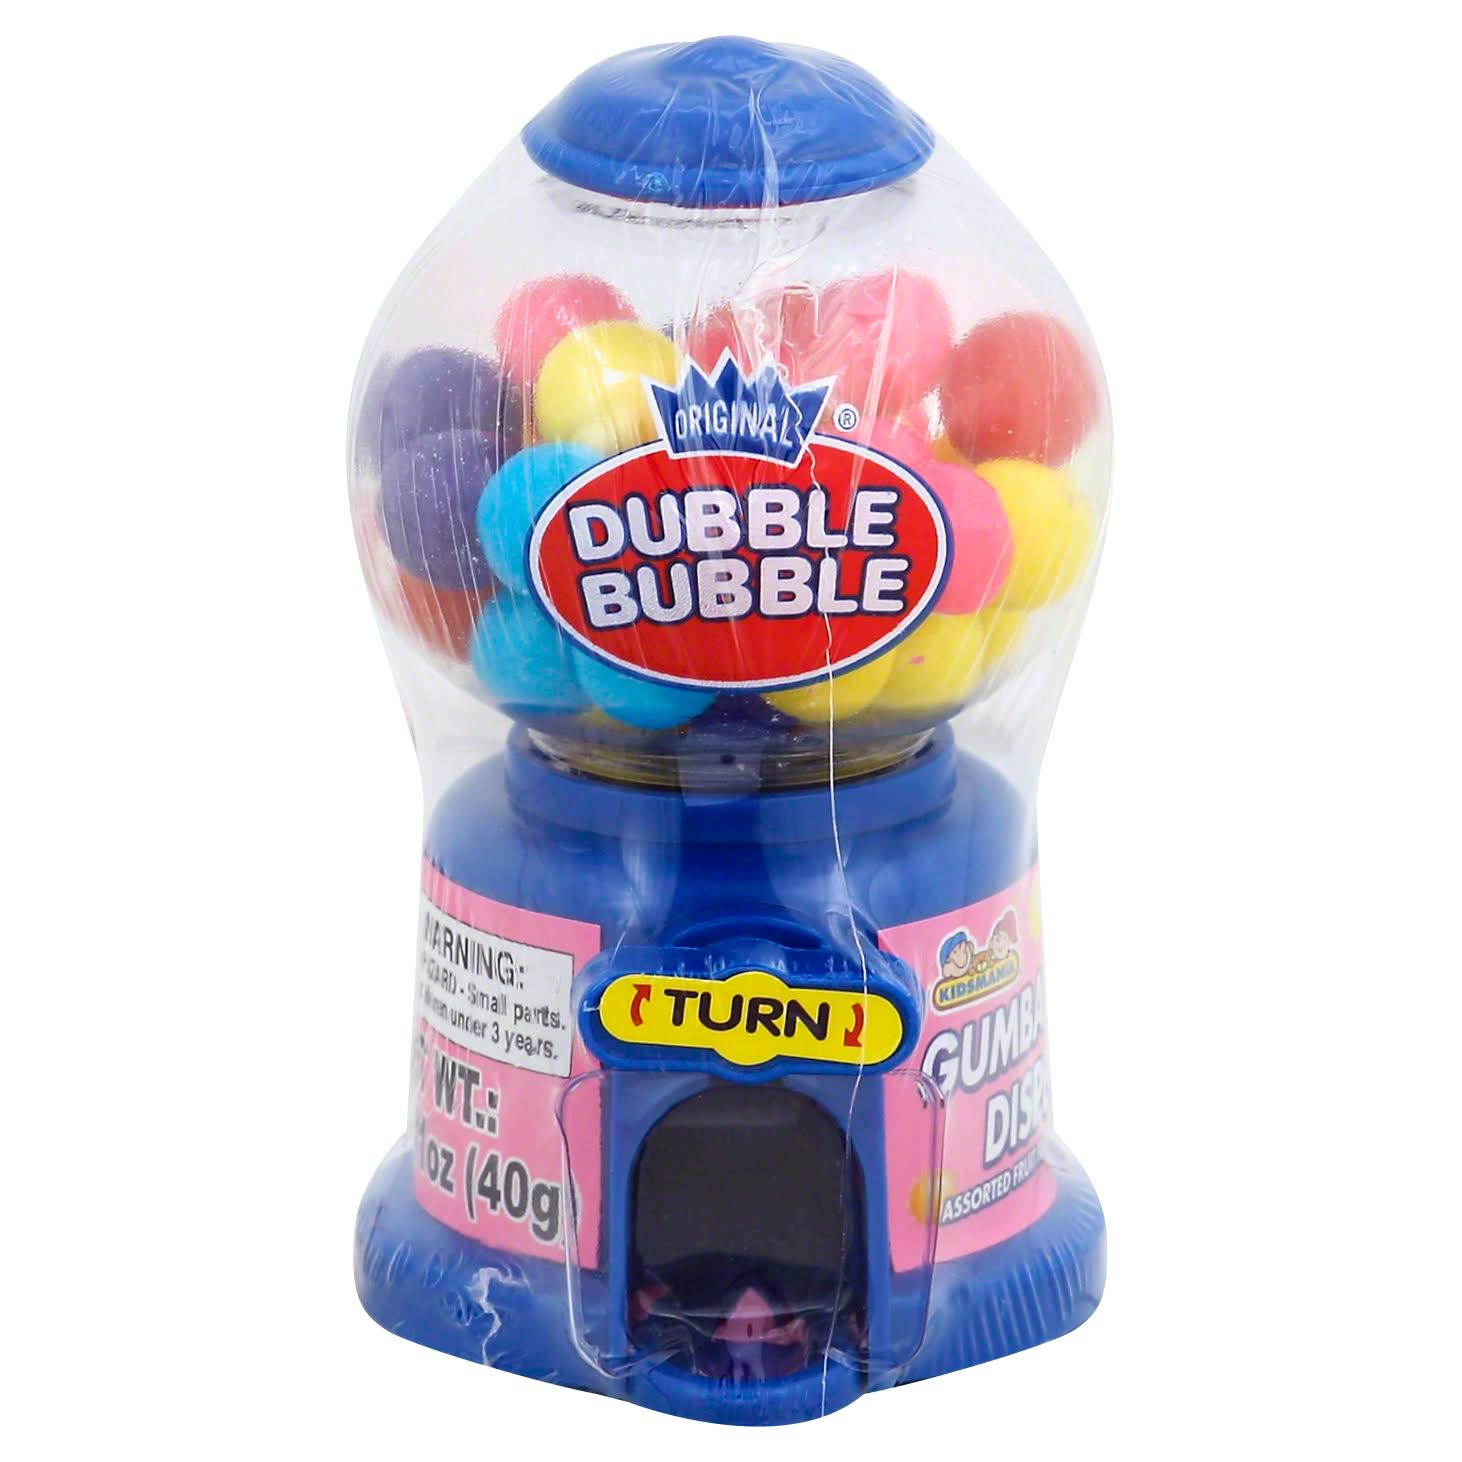 Dubble Bubble Gumball Dispenser, Original - 1.41 oz